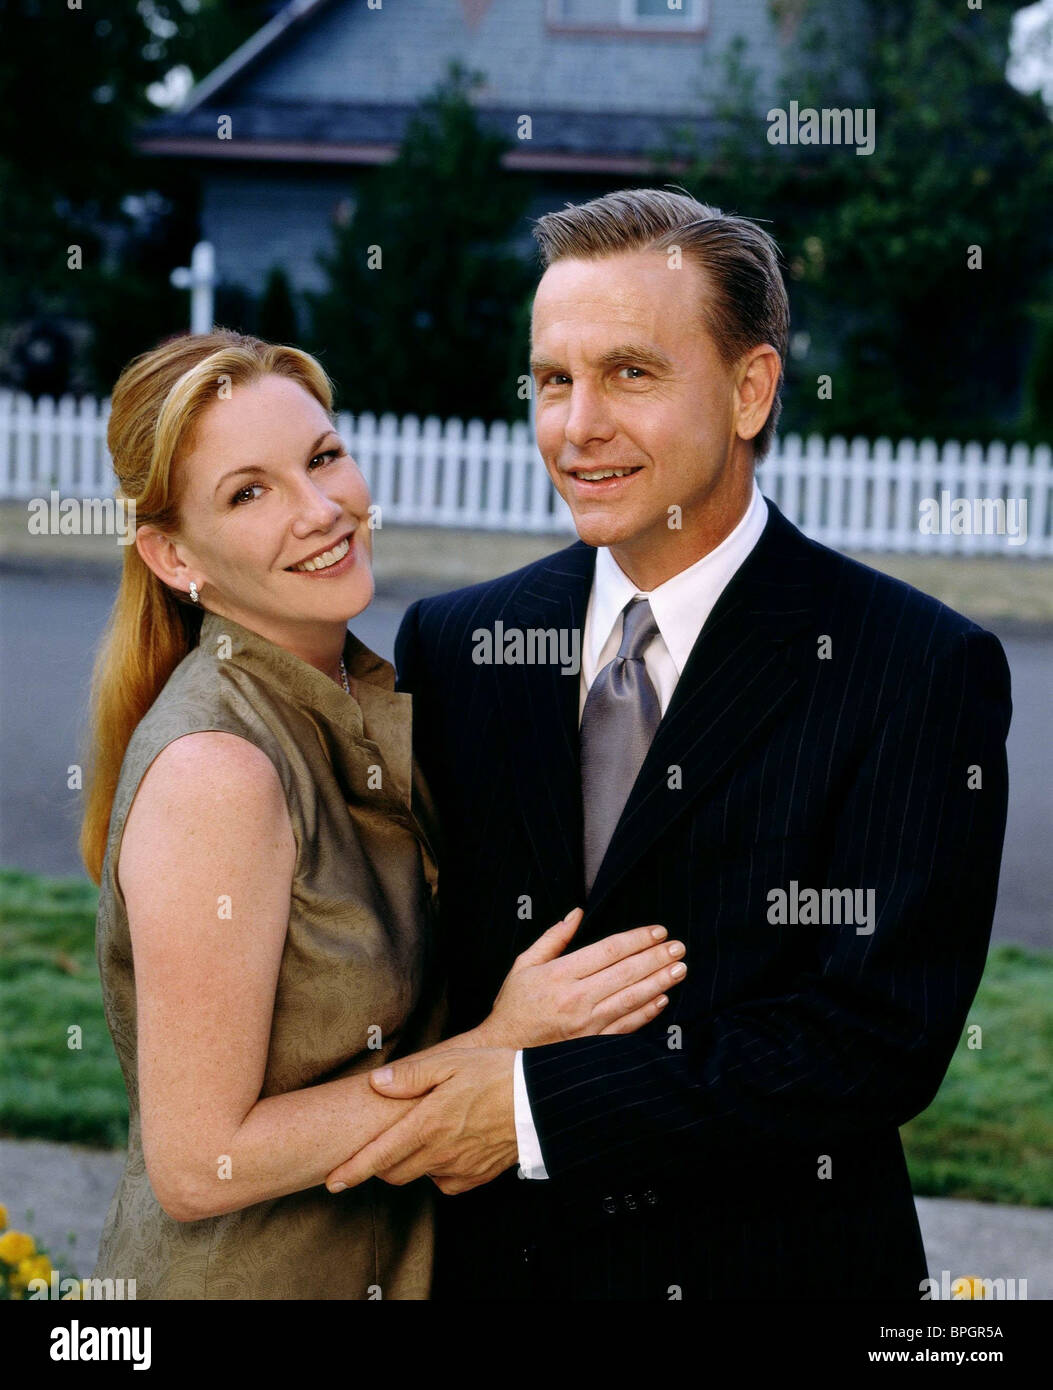 MELISSA GILBERT DAVID ANDREWS SWITCHED AT BIRTH MISTAKEN IDENTITY TWO BABIES 1999